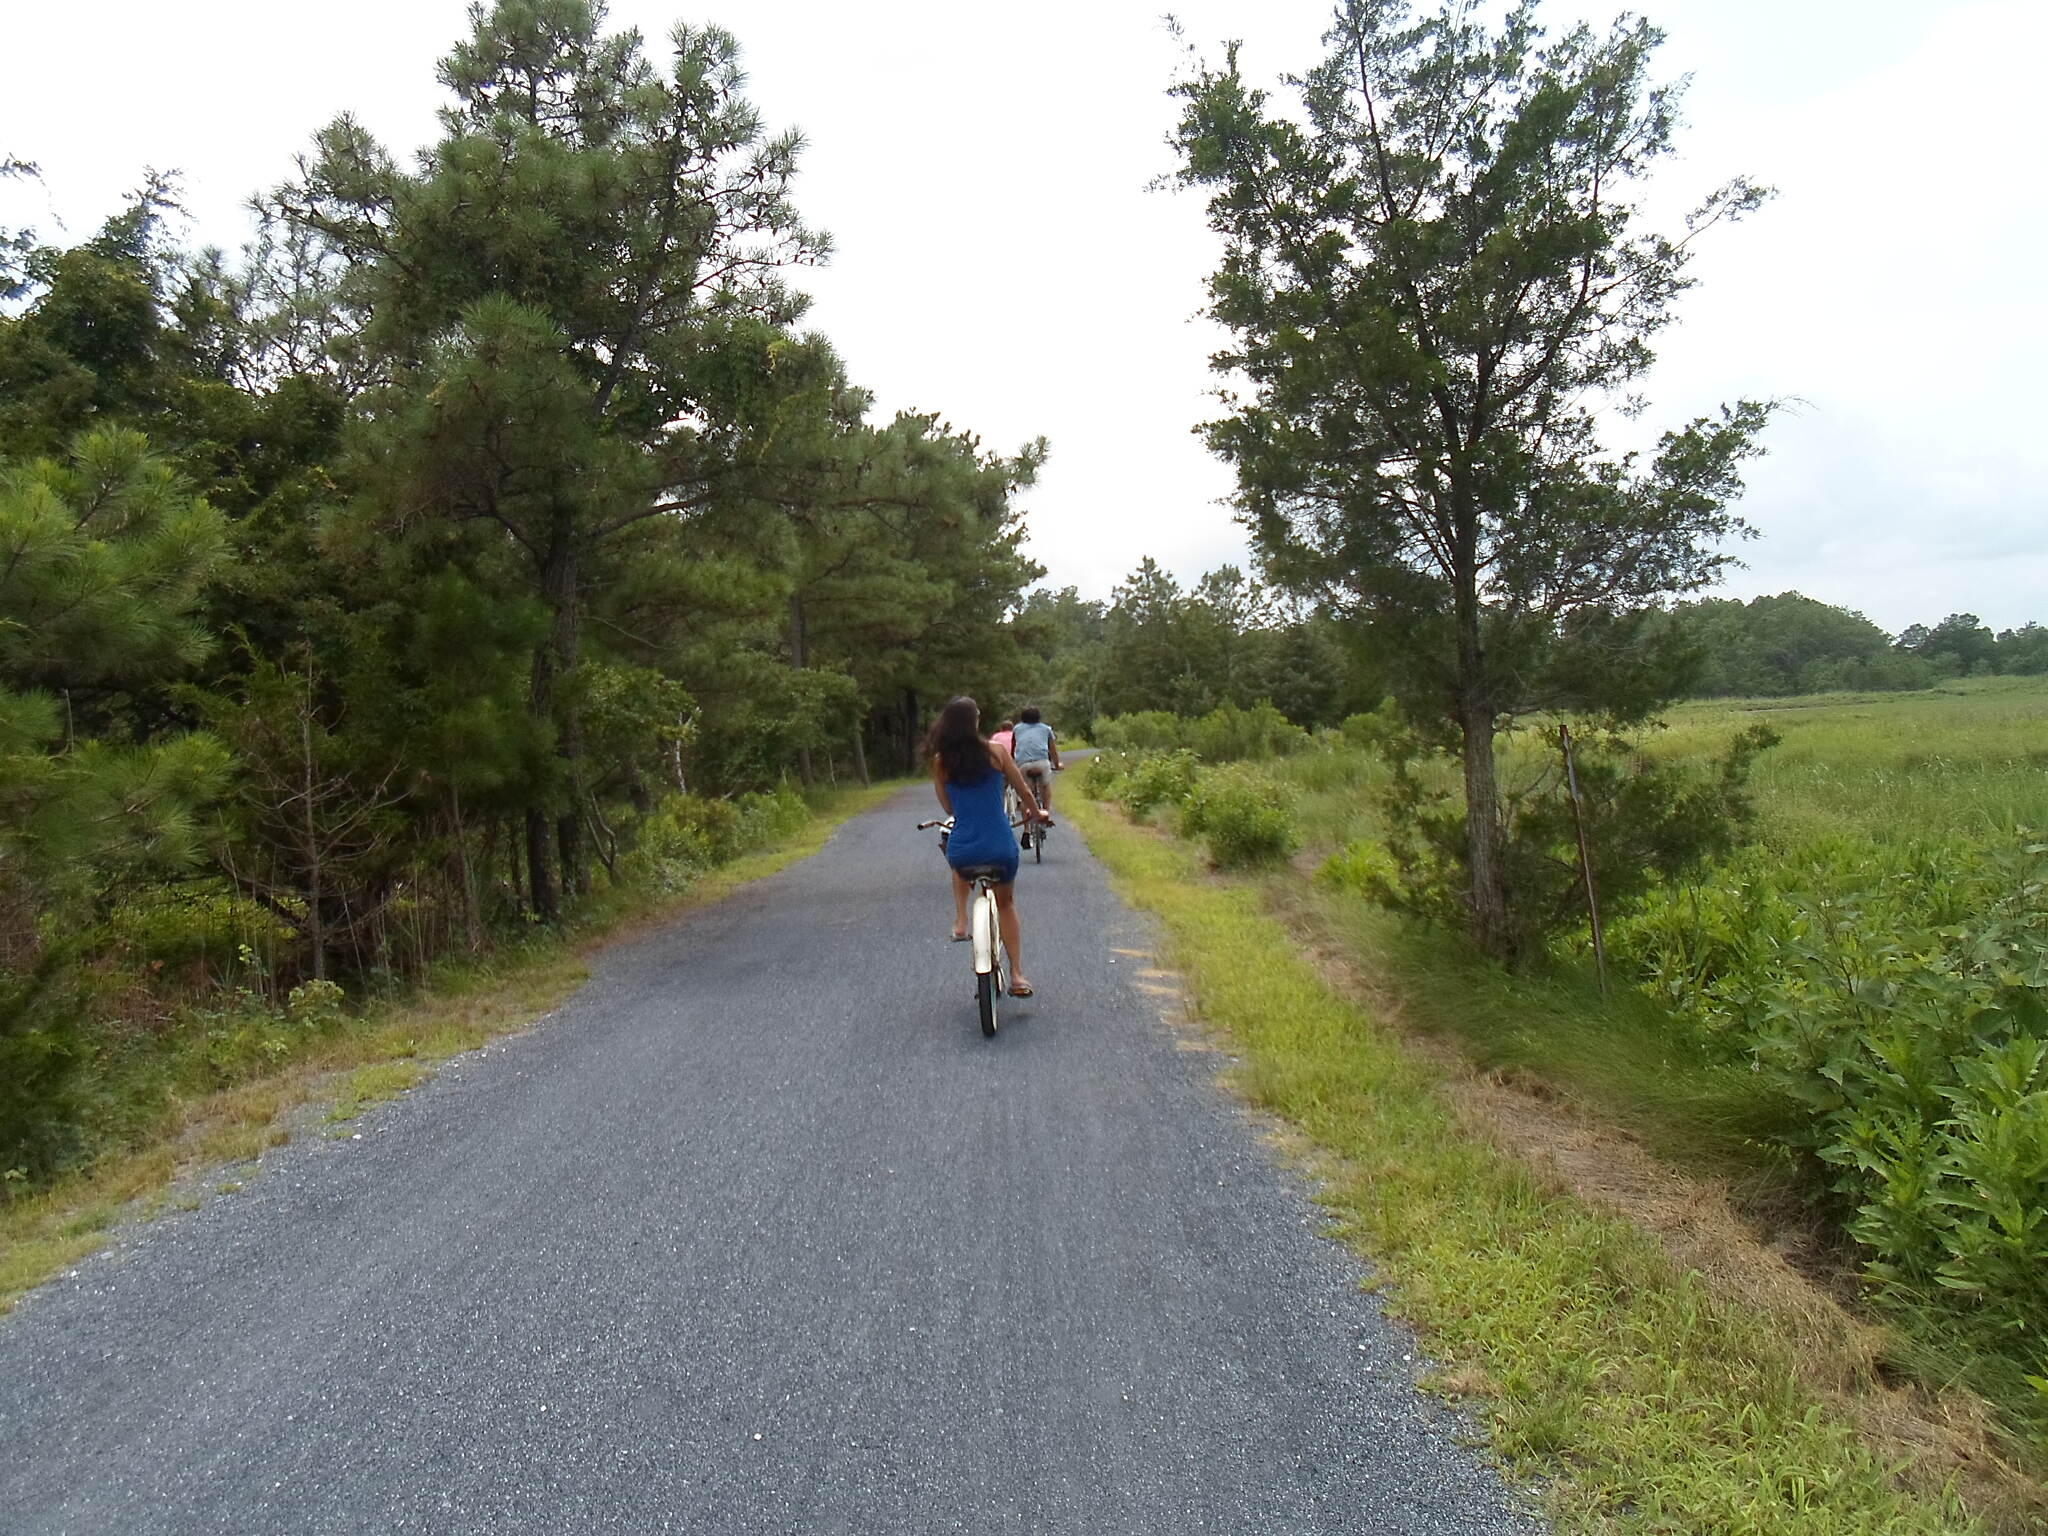 Gordons Pond Trail Gordons Pond Trail More passing cyclists in midsummer. Taken July 2015.